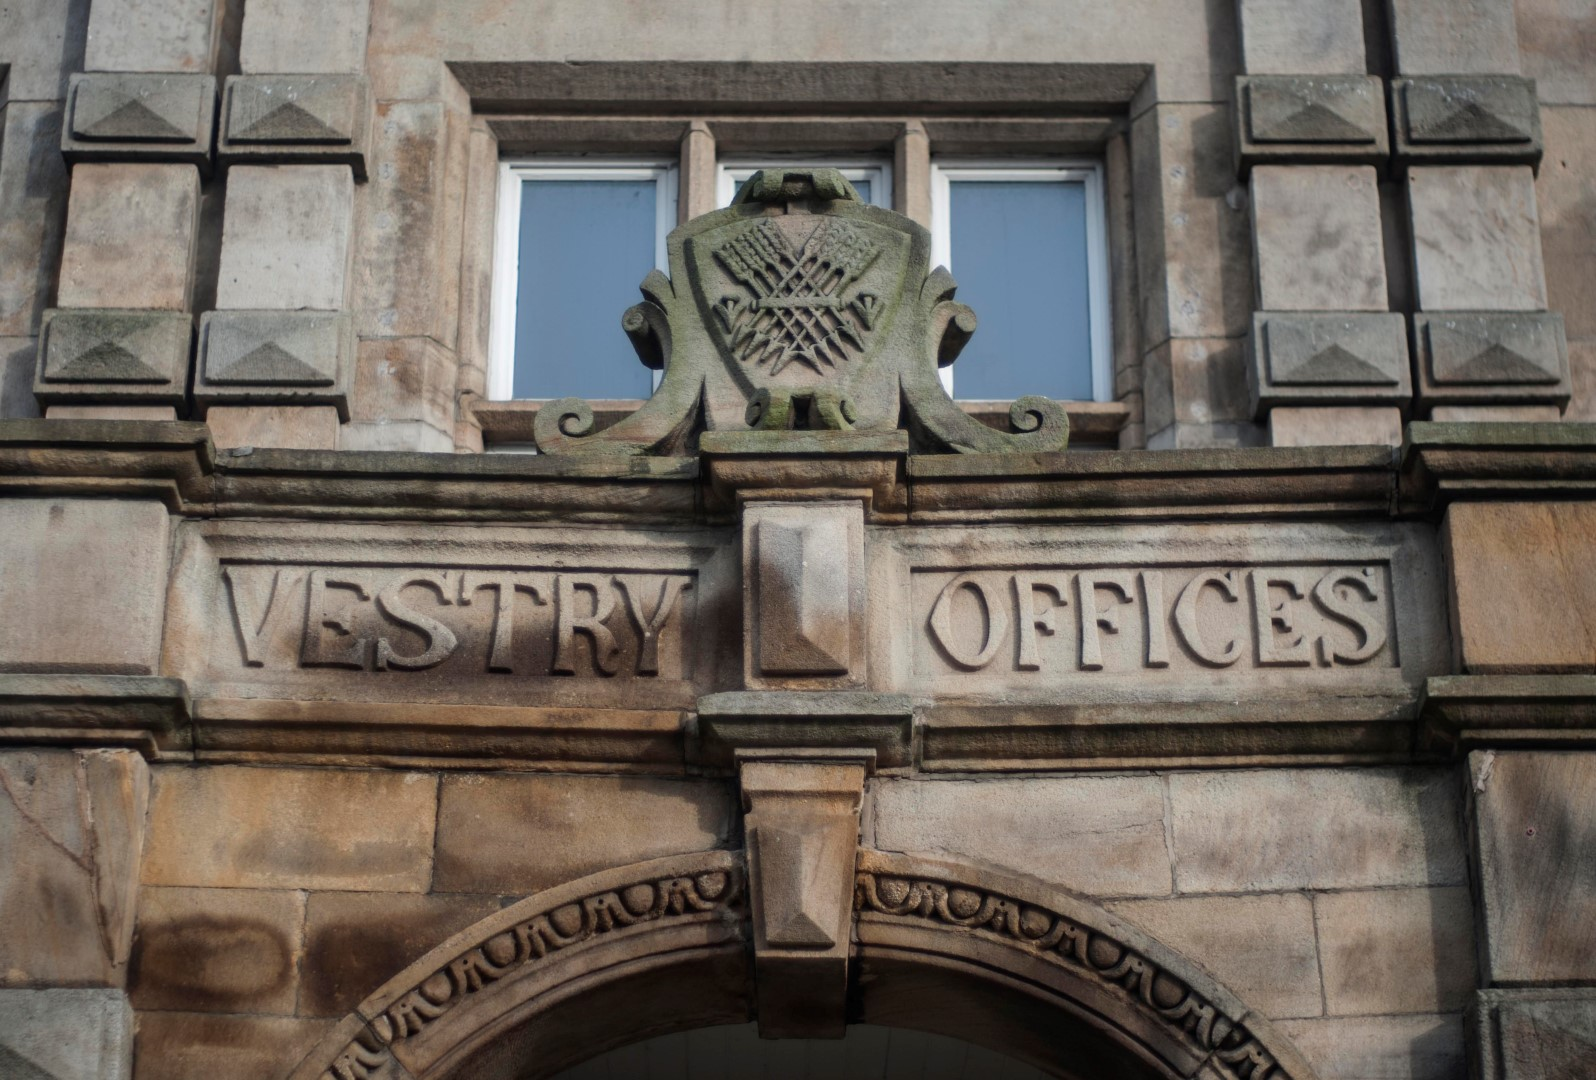 A close up photo of the sign above the door at Vestry Hall. Says: Vestry Offices